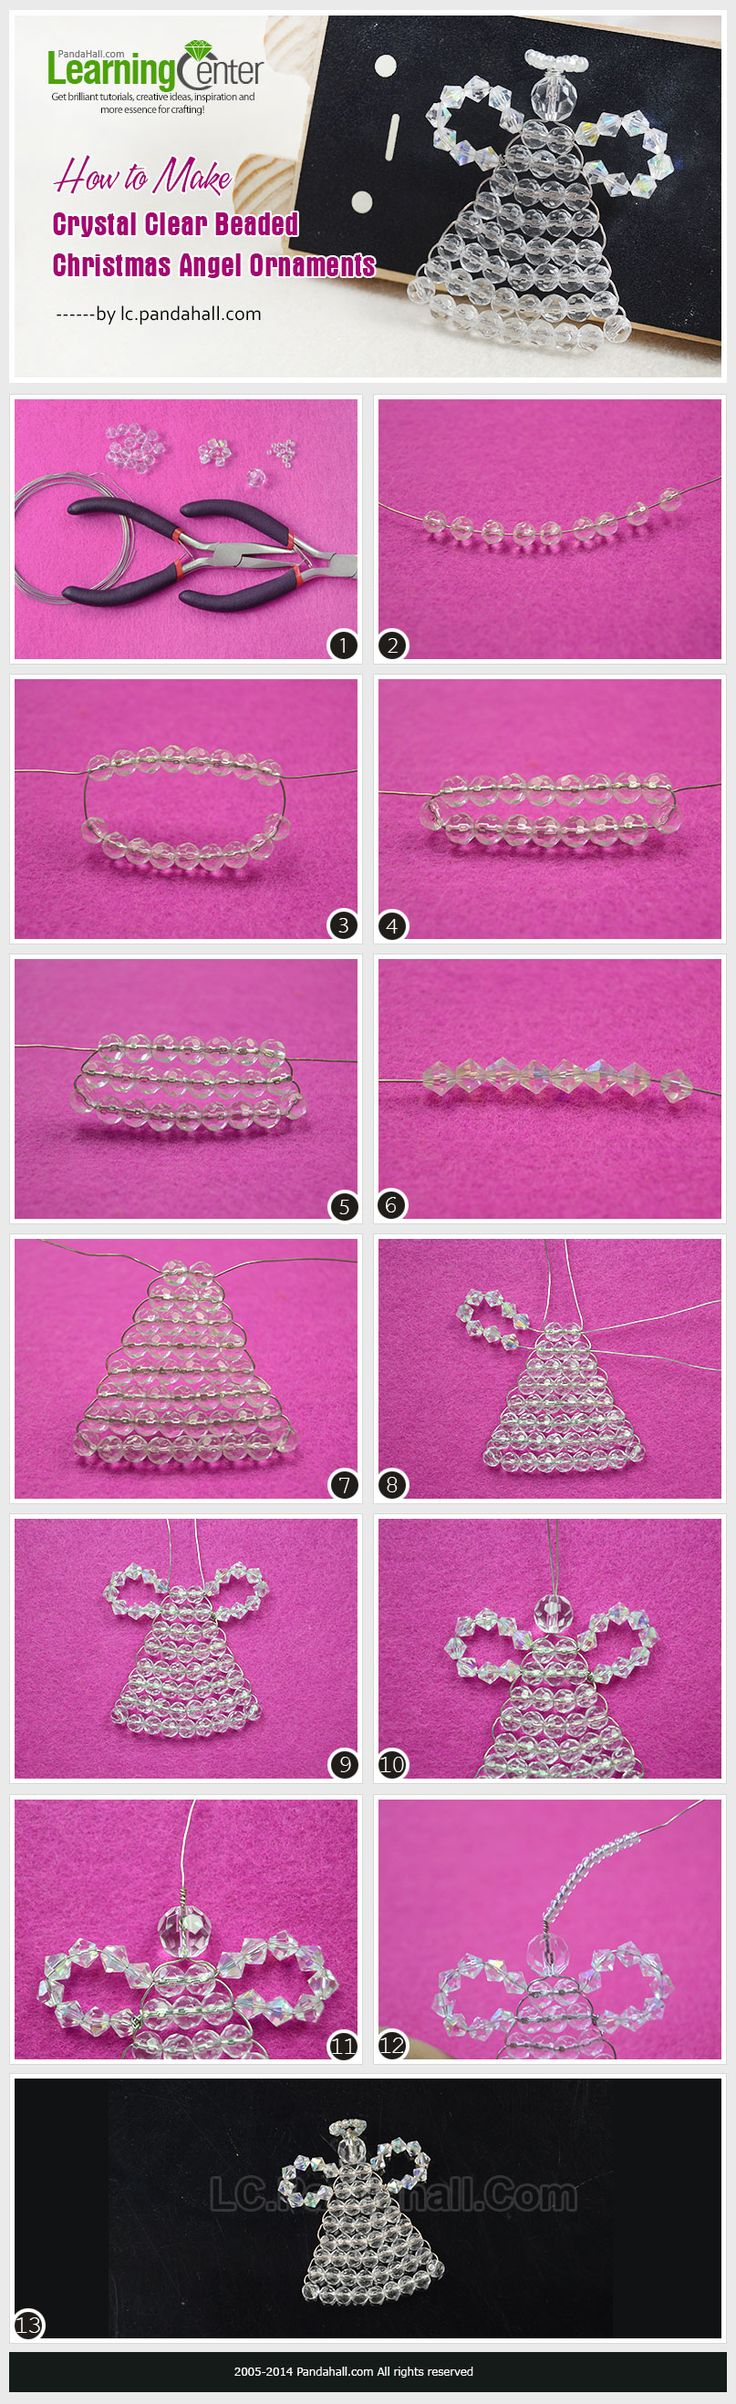 How to Make Crystal Clear Beaded Christmas Angel Ornaments